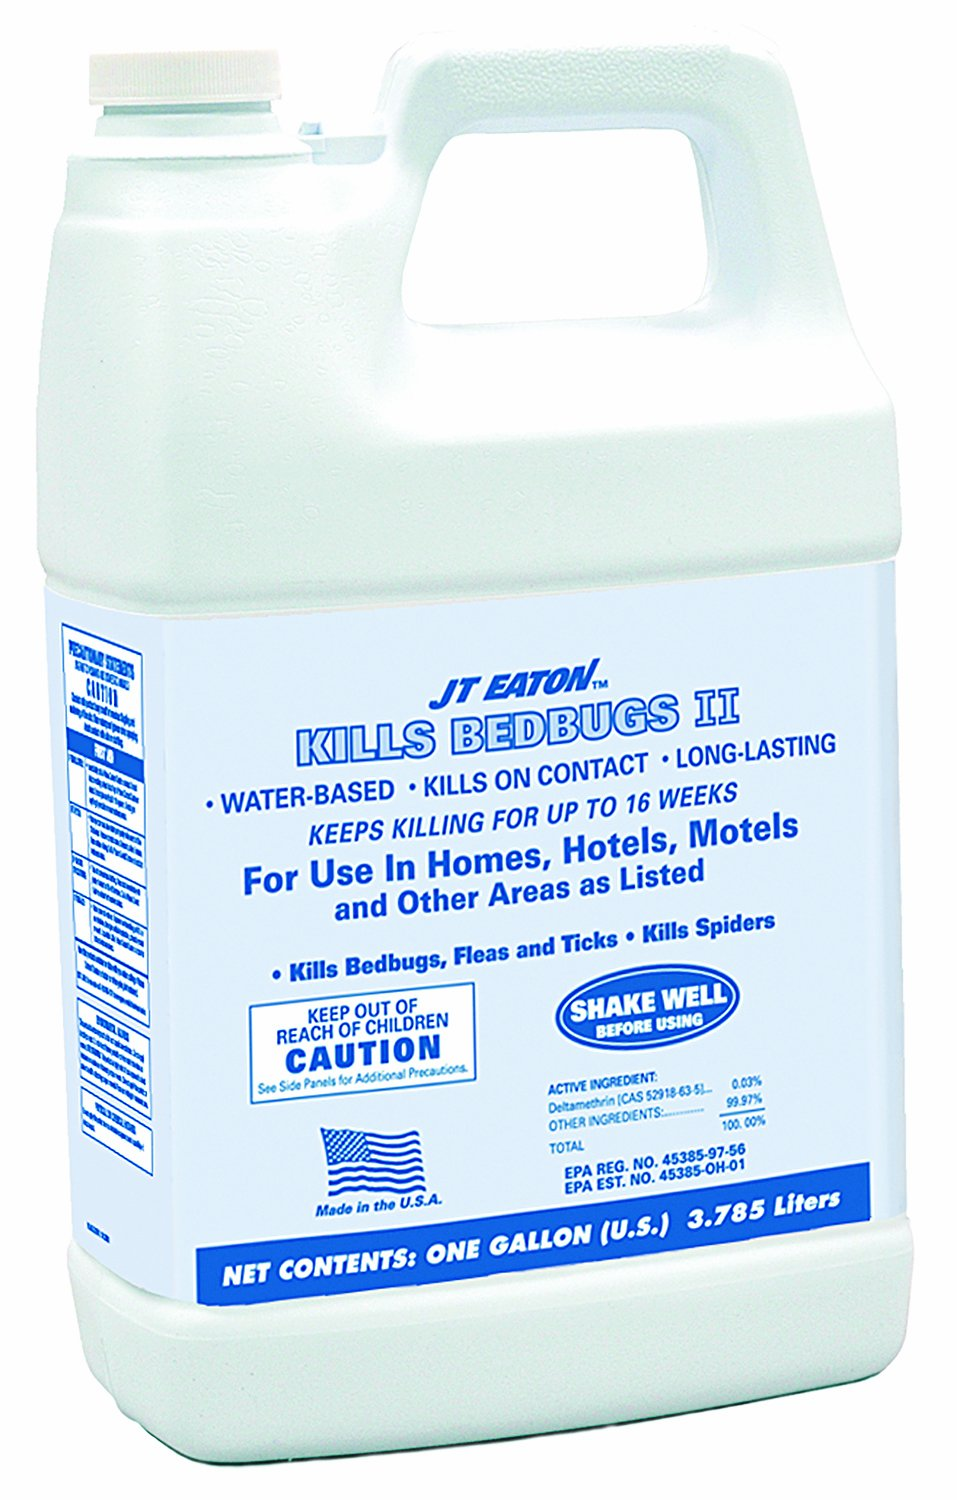 JT Eaton 207-W1GP Kills Bedbugs II Water Based Kills Bedbug Spray with Sprayer Attachment, 4 Gallon Container Professional Label